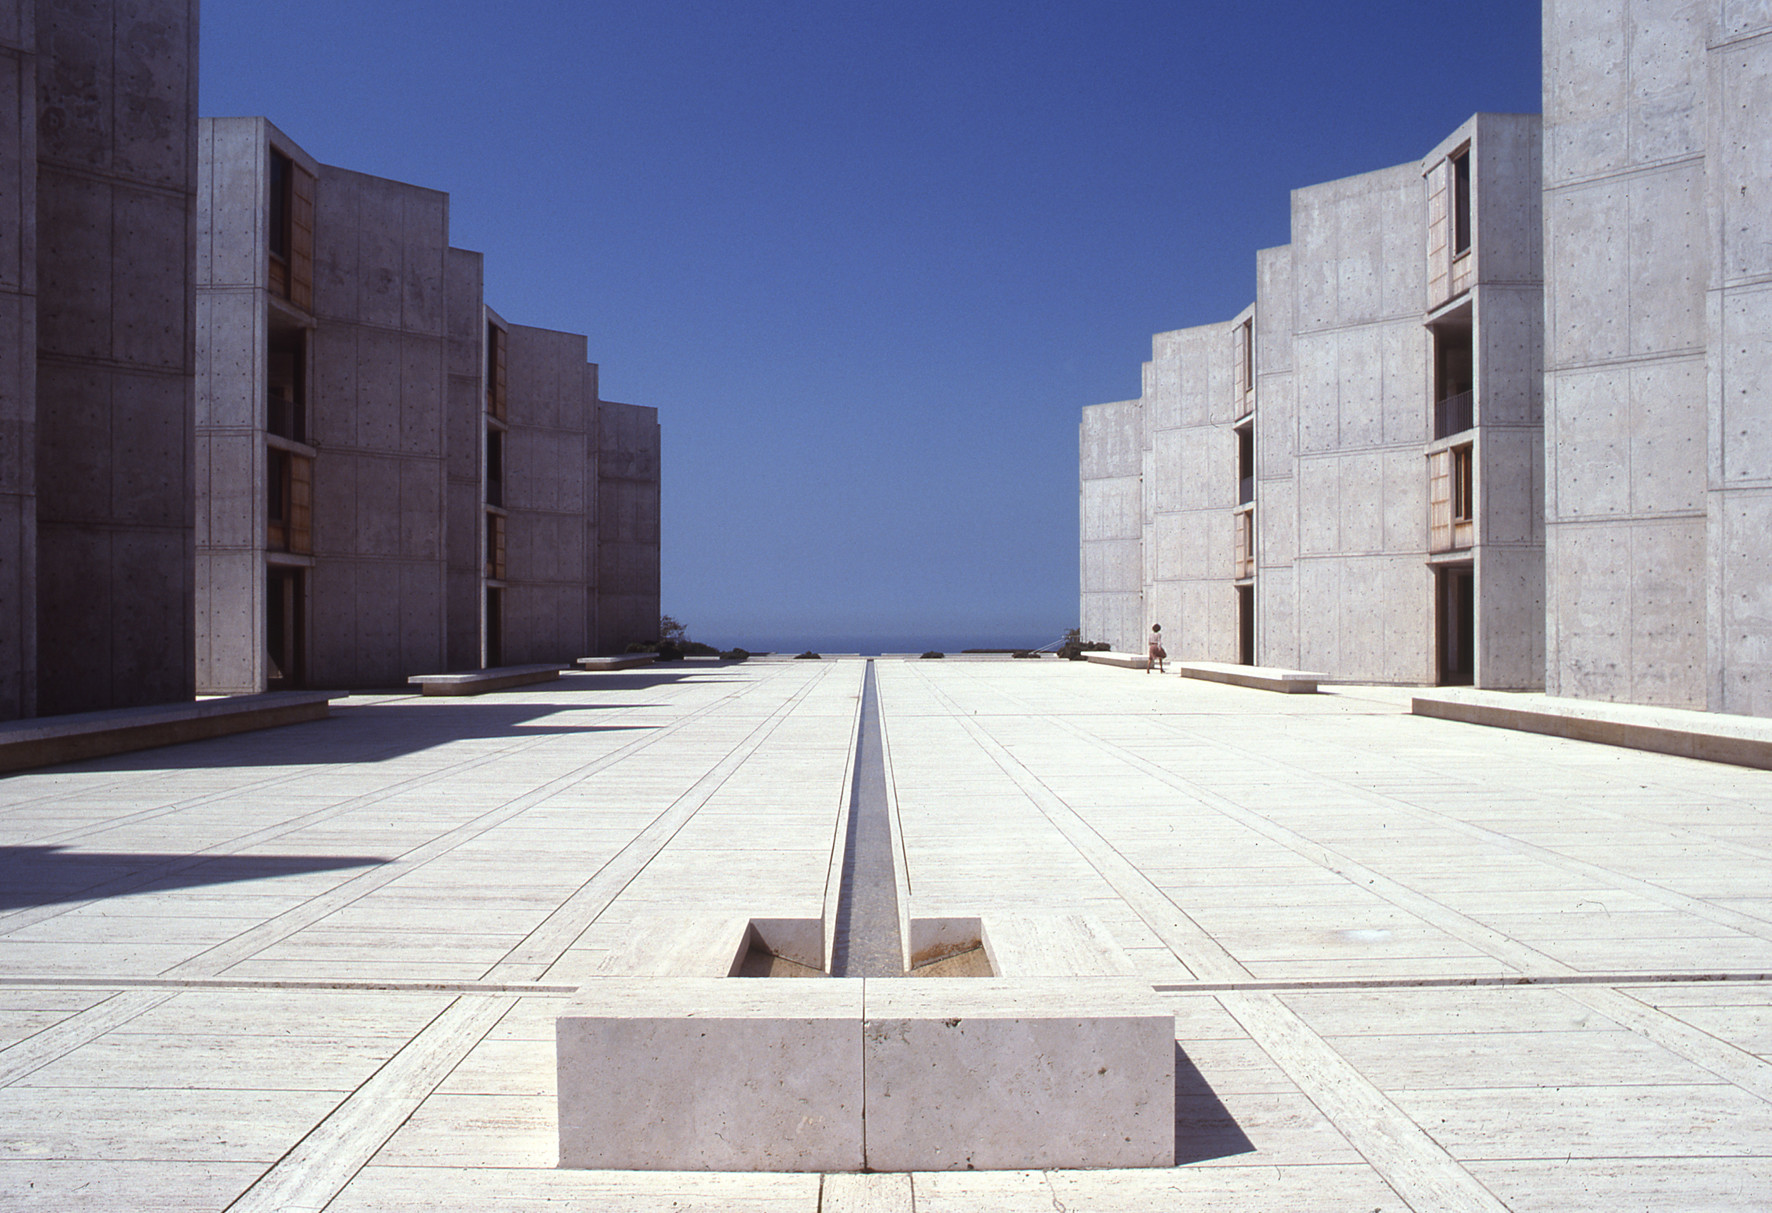 Louis Khan's Salk Institute in La Jolla, Calif.